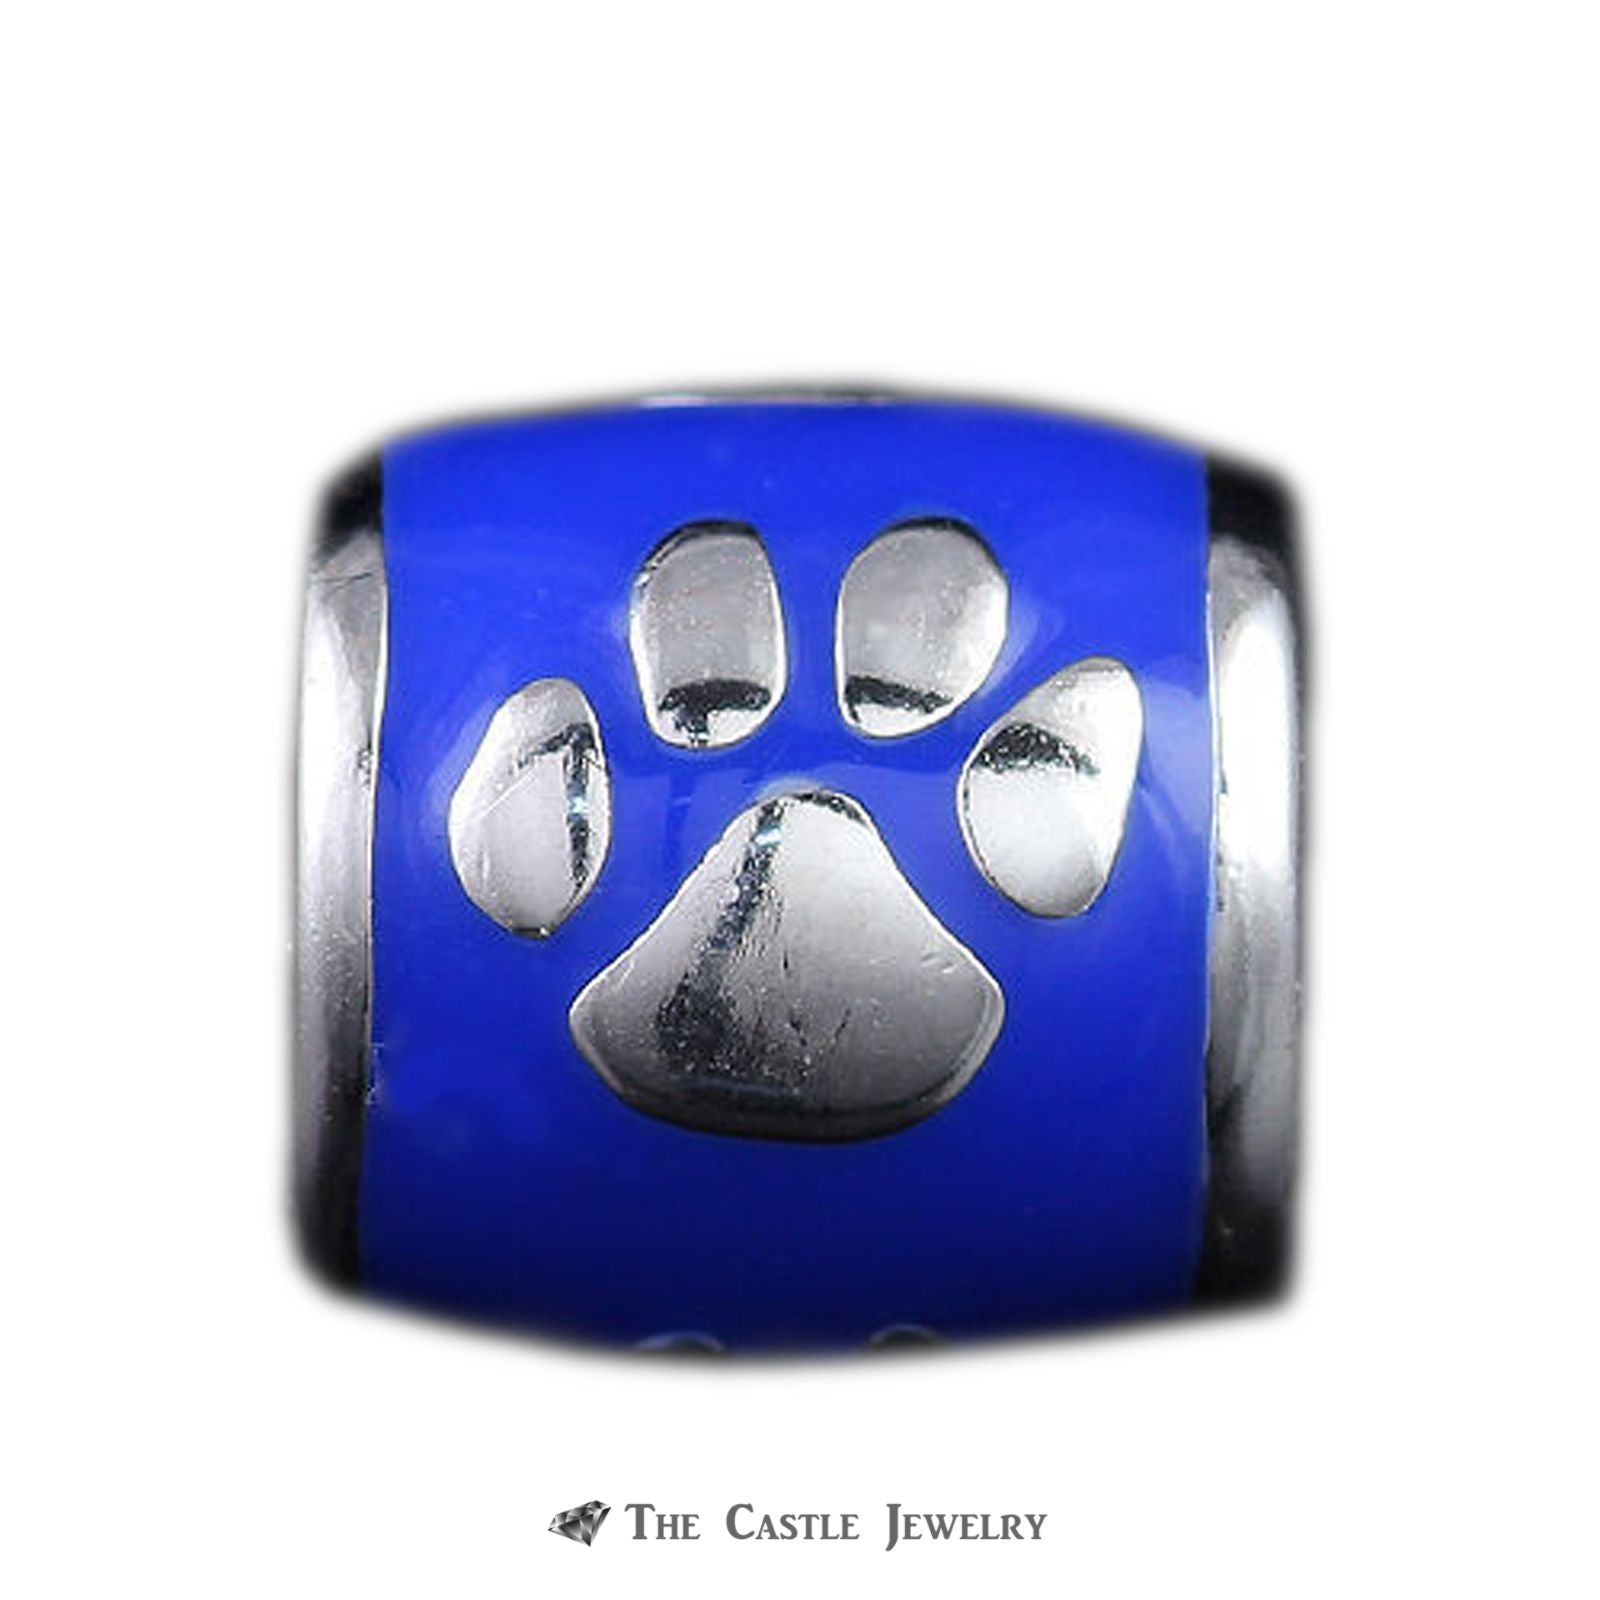 Collegiate University of Kentucky Wildcat Paw Barrel Bead